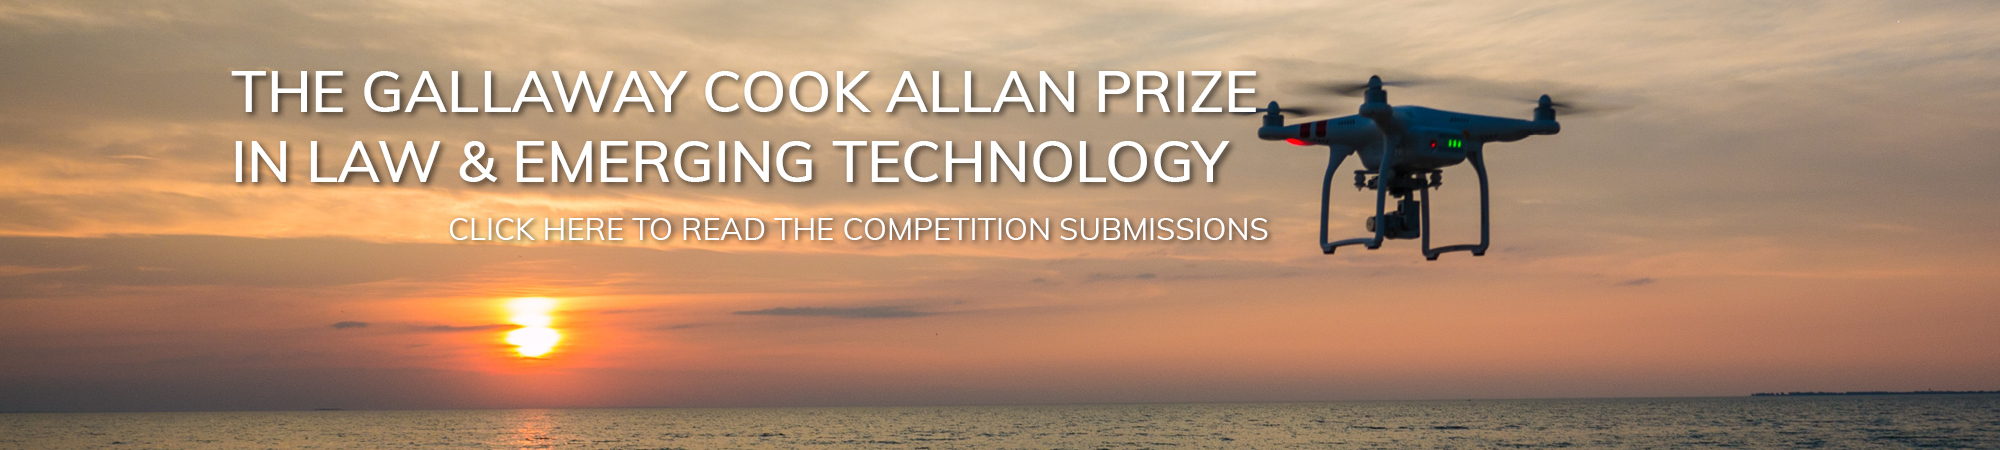 The Gallaway Cook Allan prize in Law and emerging technology, read submissions here